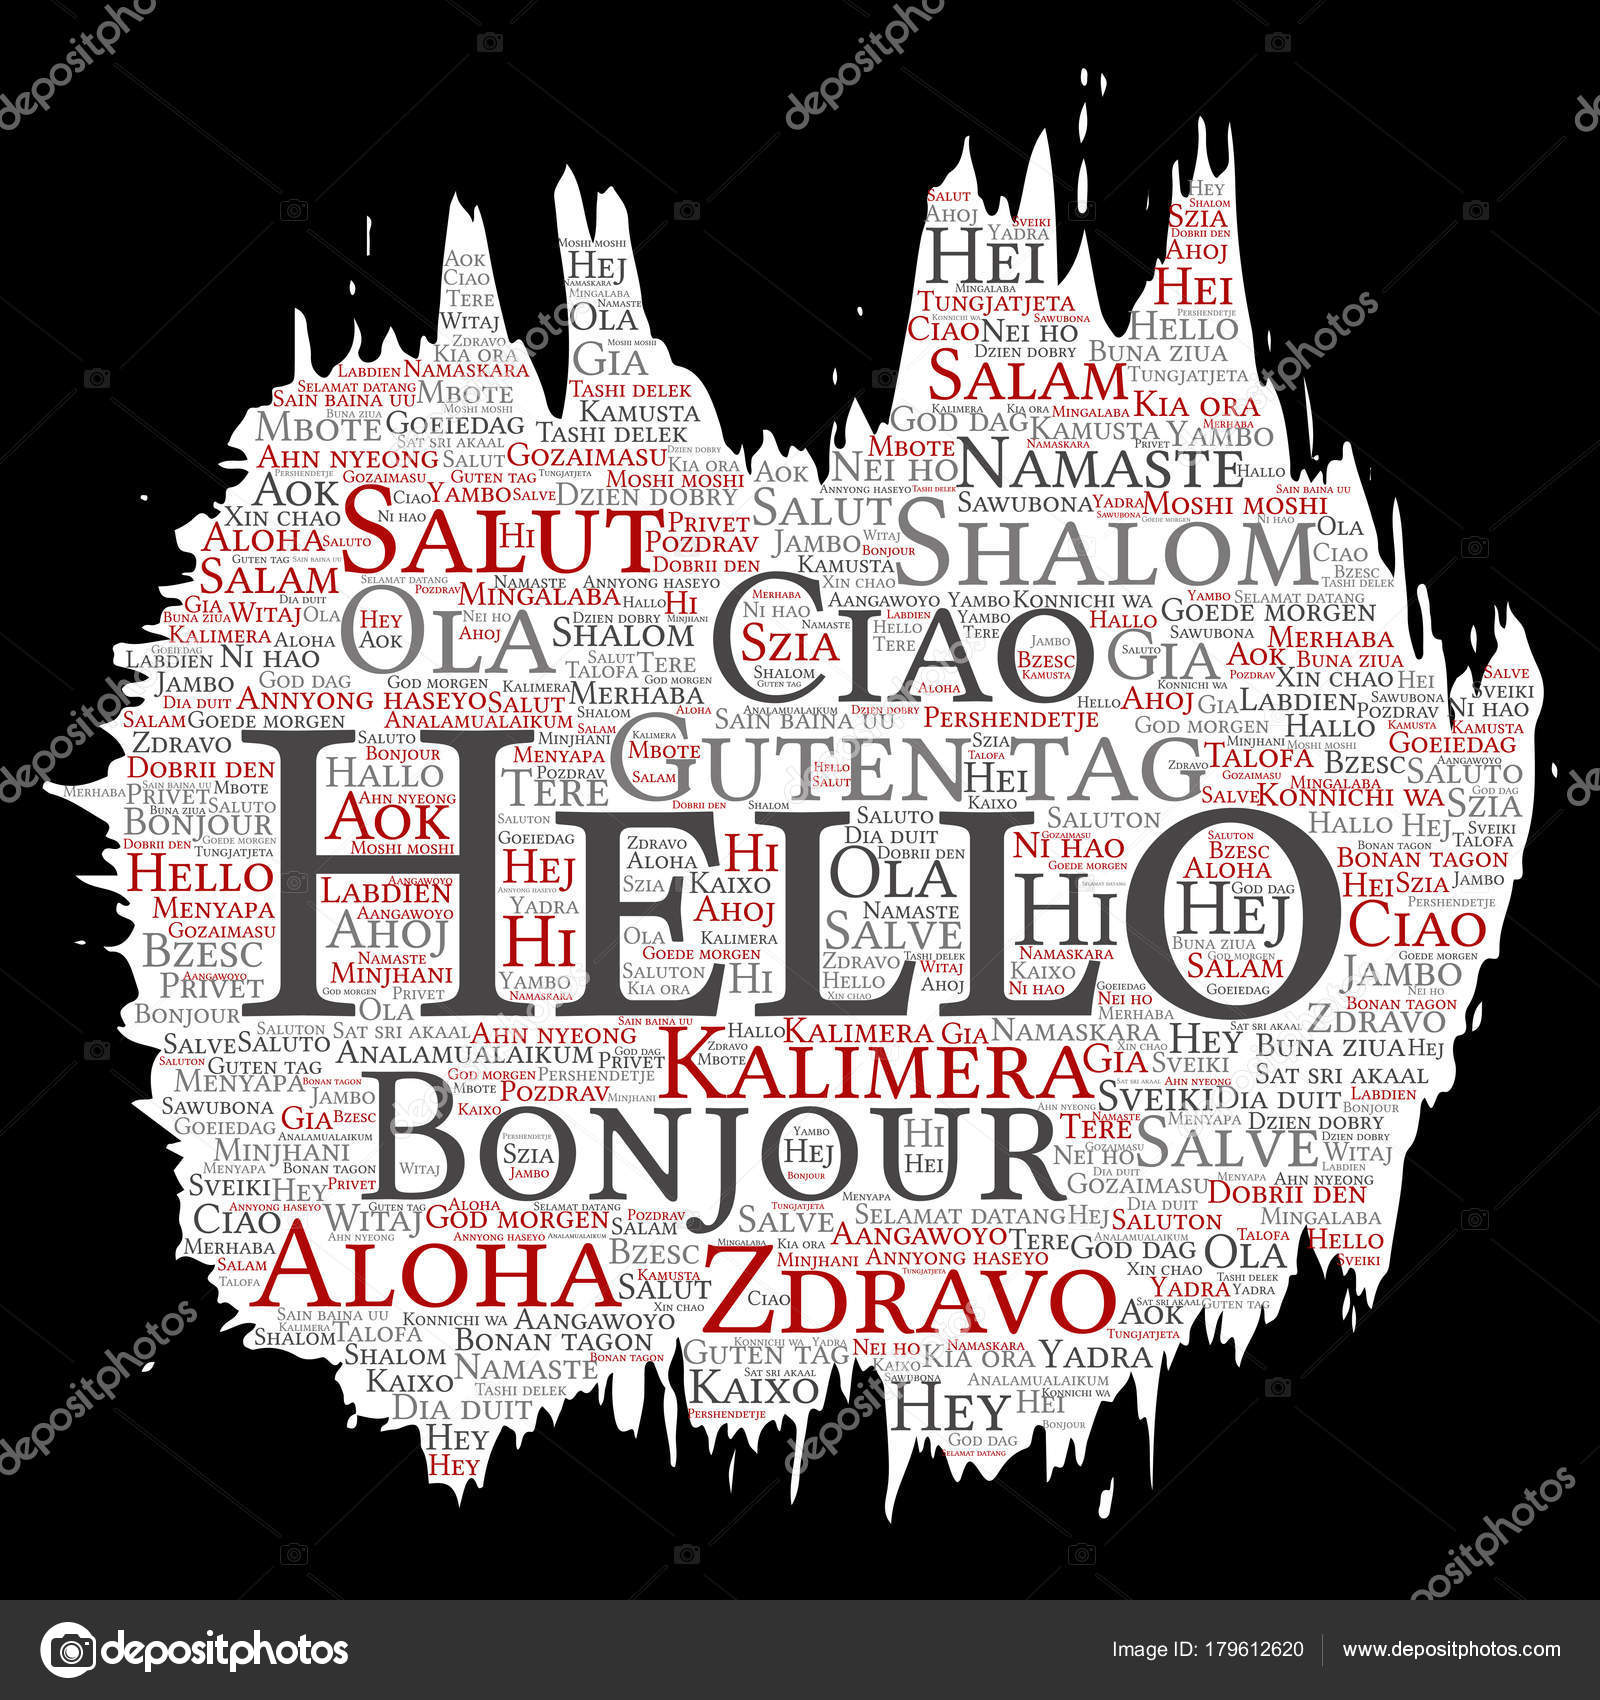 Hello Or Greeting In Different Languages Stock Vector Design36